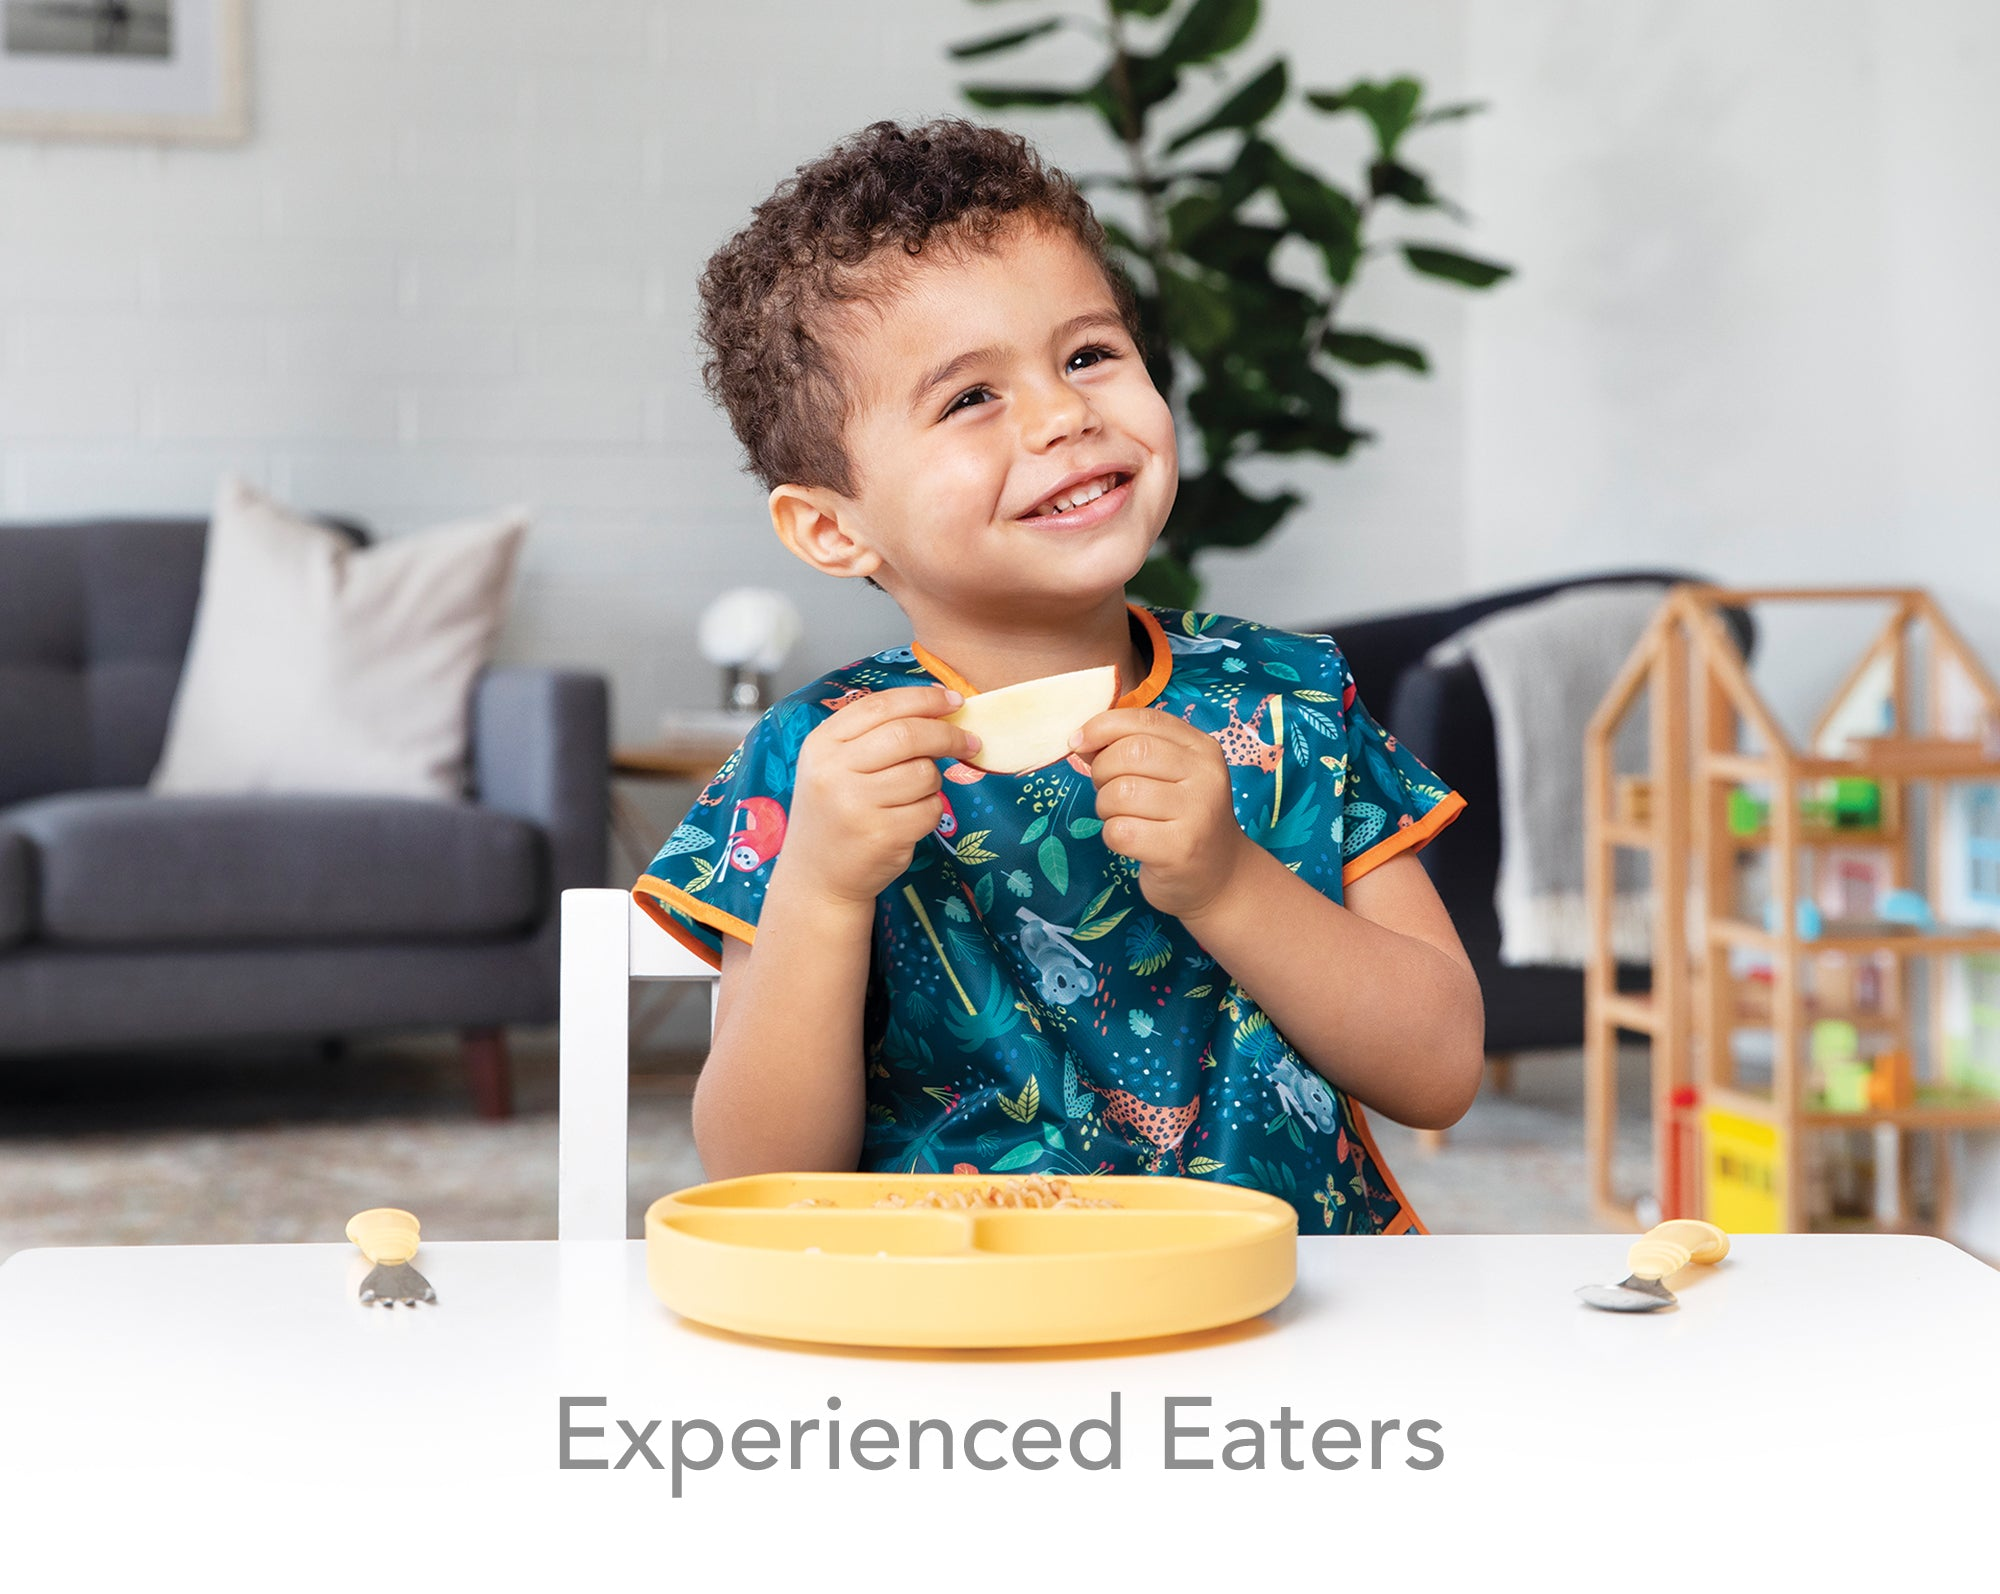 Experienced Eaters